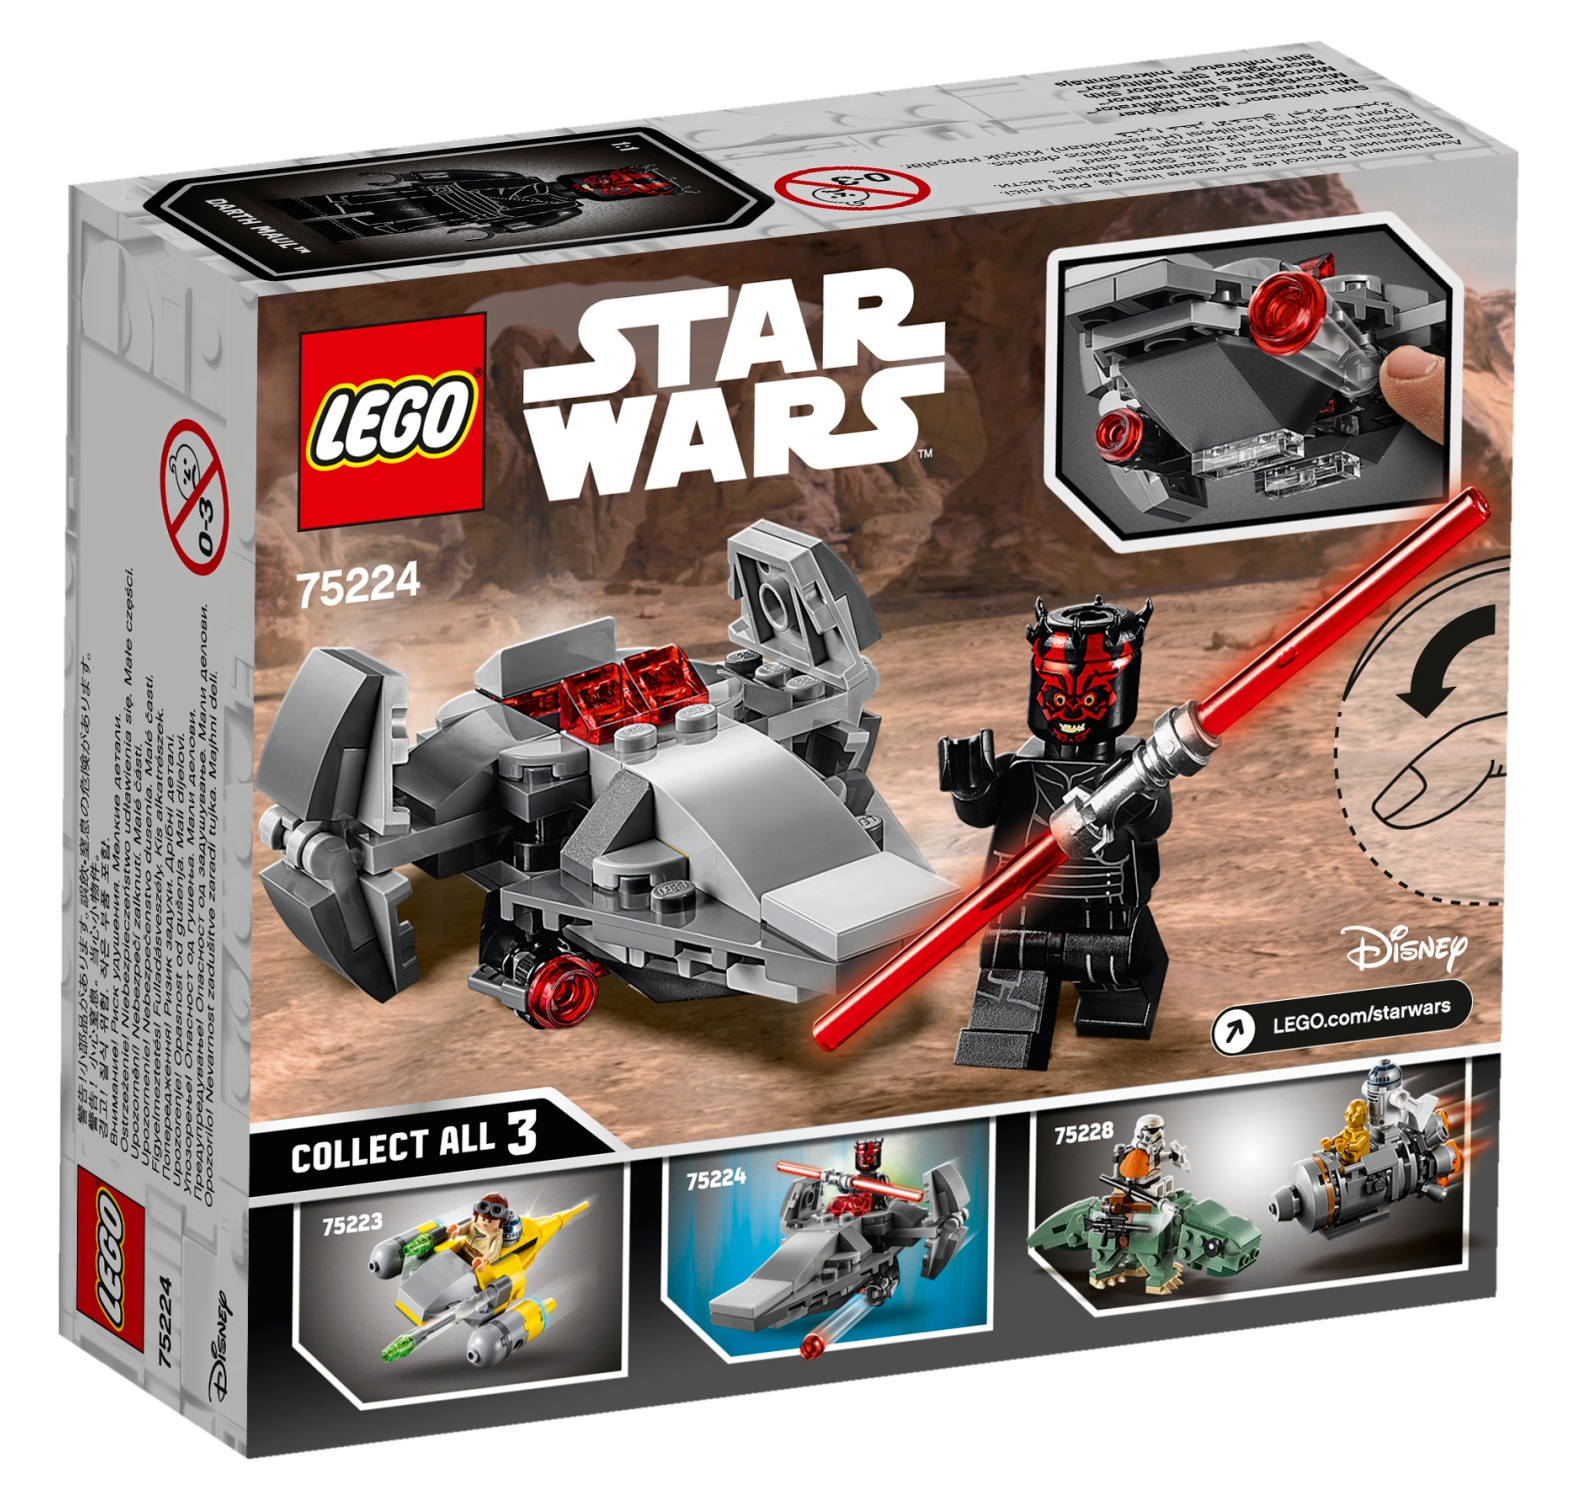 LEGO Star Wars: Sith Infiltrator - Microfighter (75224) image